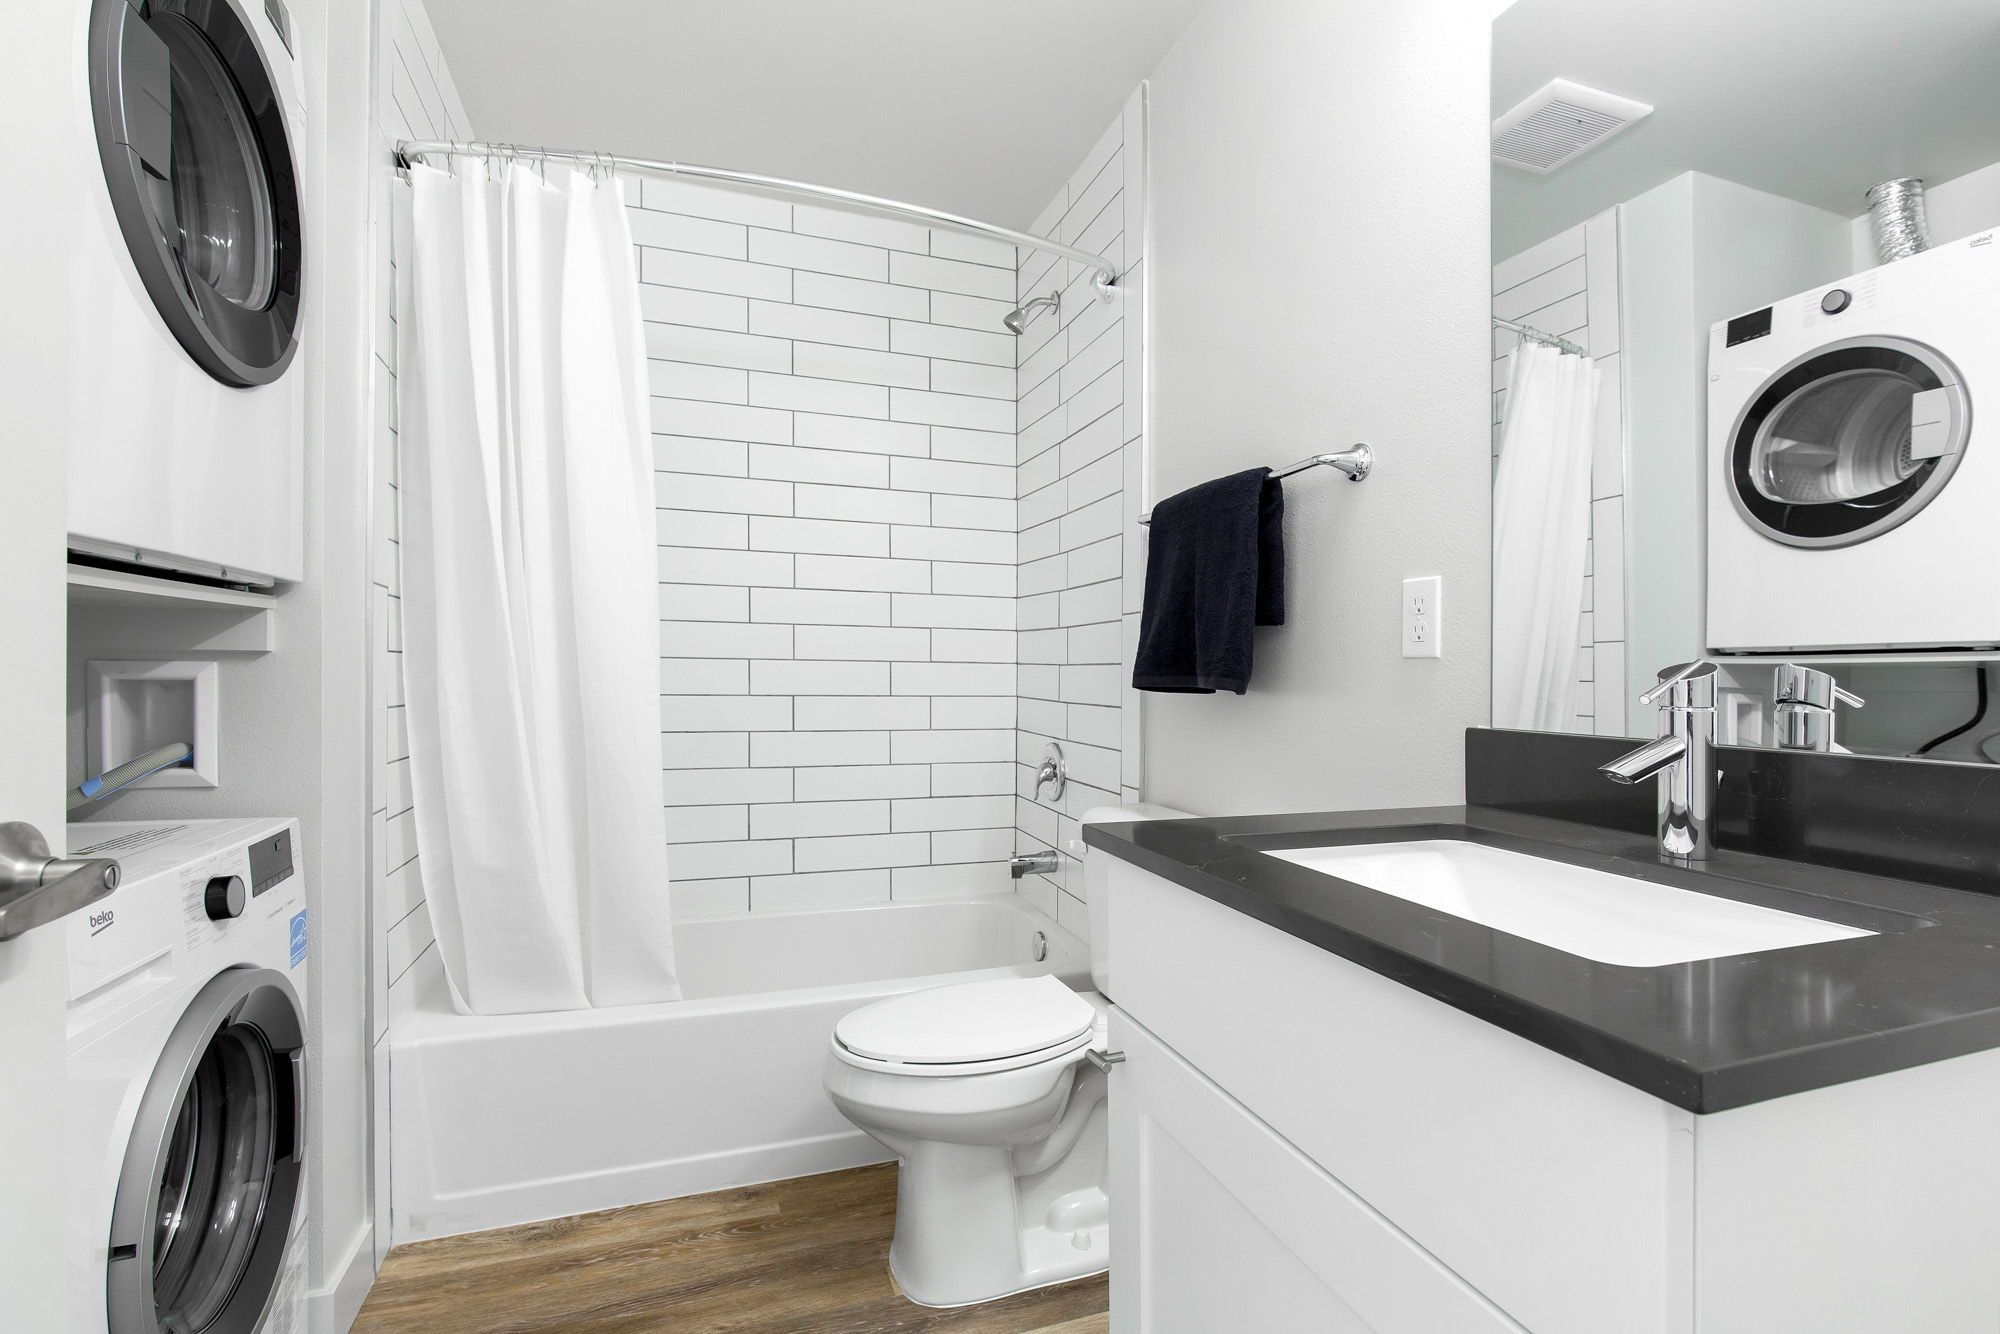 Studio Apartments Available In Greenwood Bode Greenview By Common In 2020 One Bedroom Apartment Studio Apartment Bathroom Design